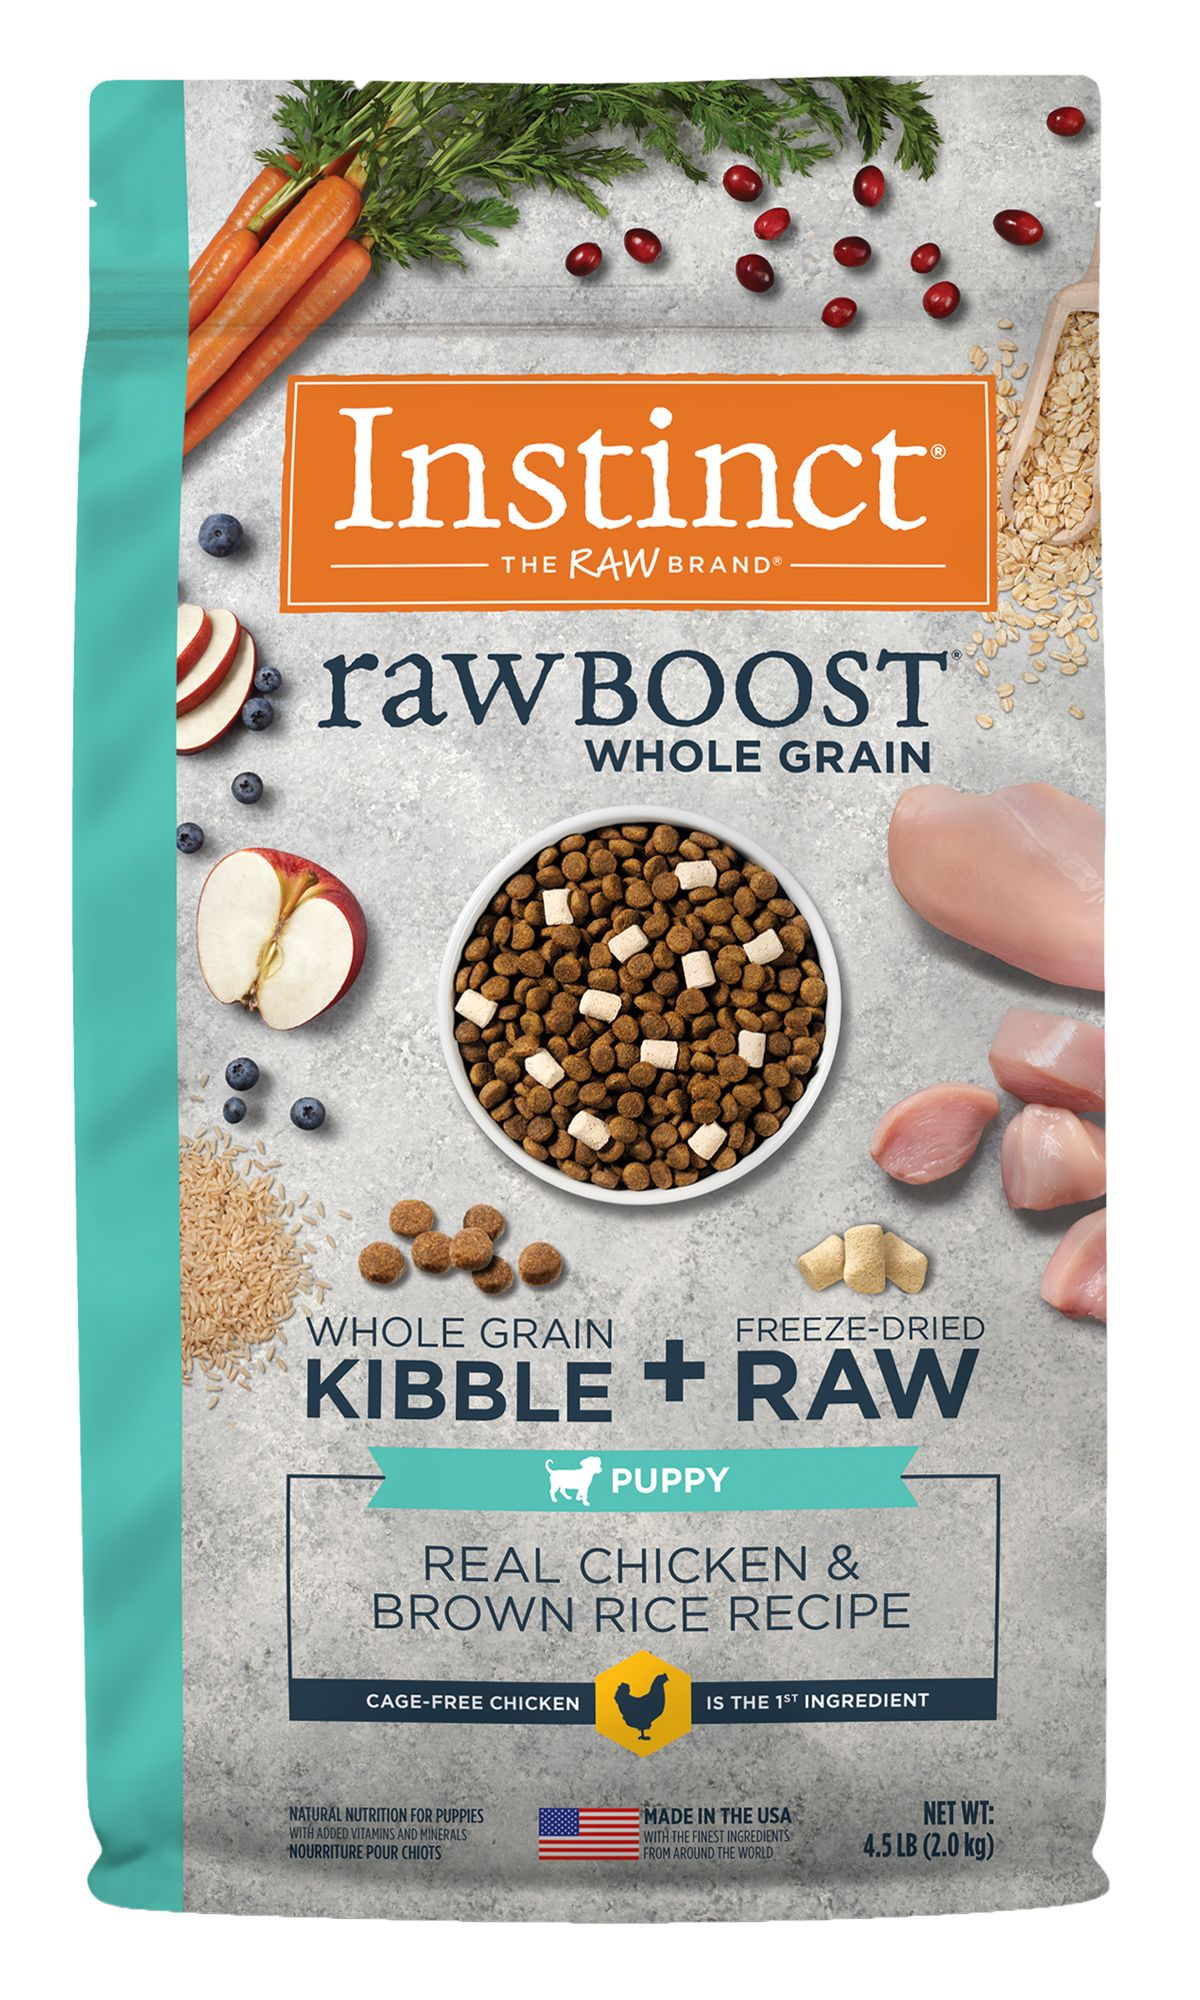 Raw Boost Whole Grain Recipe with Real Chicken and Brown Rice for Puppies